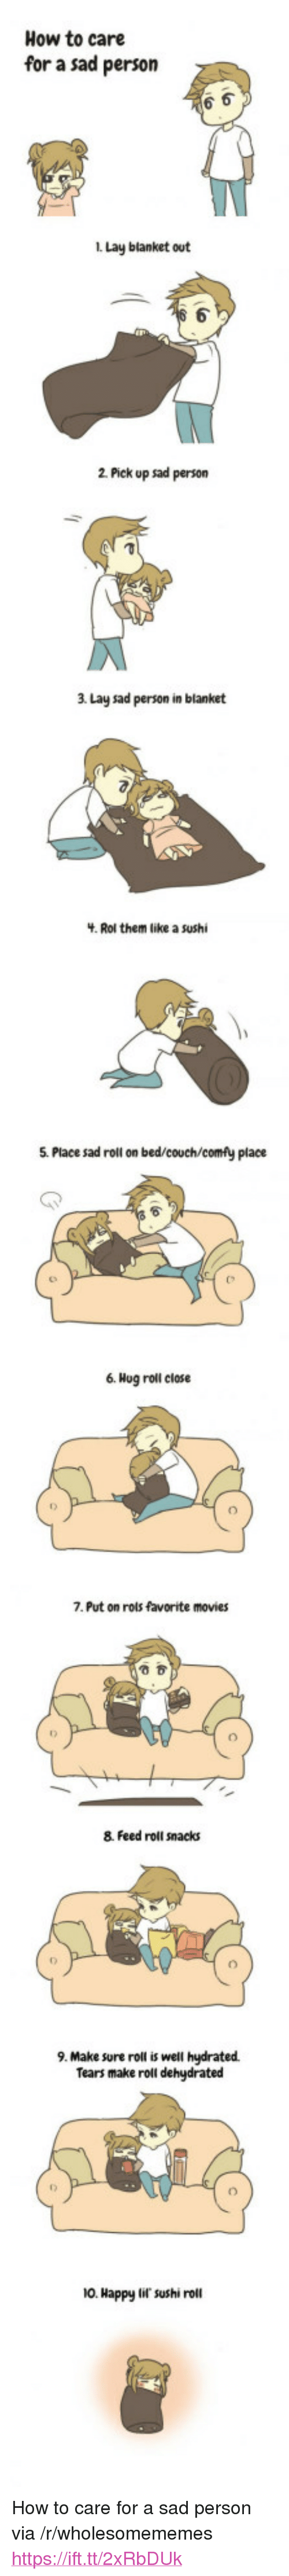 """Movies, Couch, and Happy: How to care  for a sad person  i. Lay blanket out  1  2 Pick up sad person  3 Lay sad person in blanket  . Rol them like a sushi  5. Place sad roll on bed/couch/comfy place  6. Hog roll close  7. Put on rols favorite movies  8. Feed roll snacks  9. Make sure roll is well hydrated  Tears make roll dehydrated  10. Happy lif sushi roll <p>How to care for a sad person via /r/wholesomememes <a href=""""https://ift.tt/2xRbDUk"""">https://ift.tt/2xRbDUk</a></p>"""